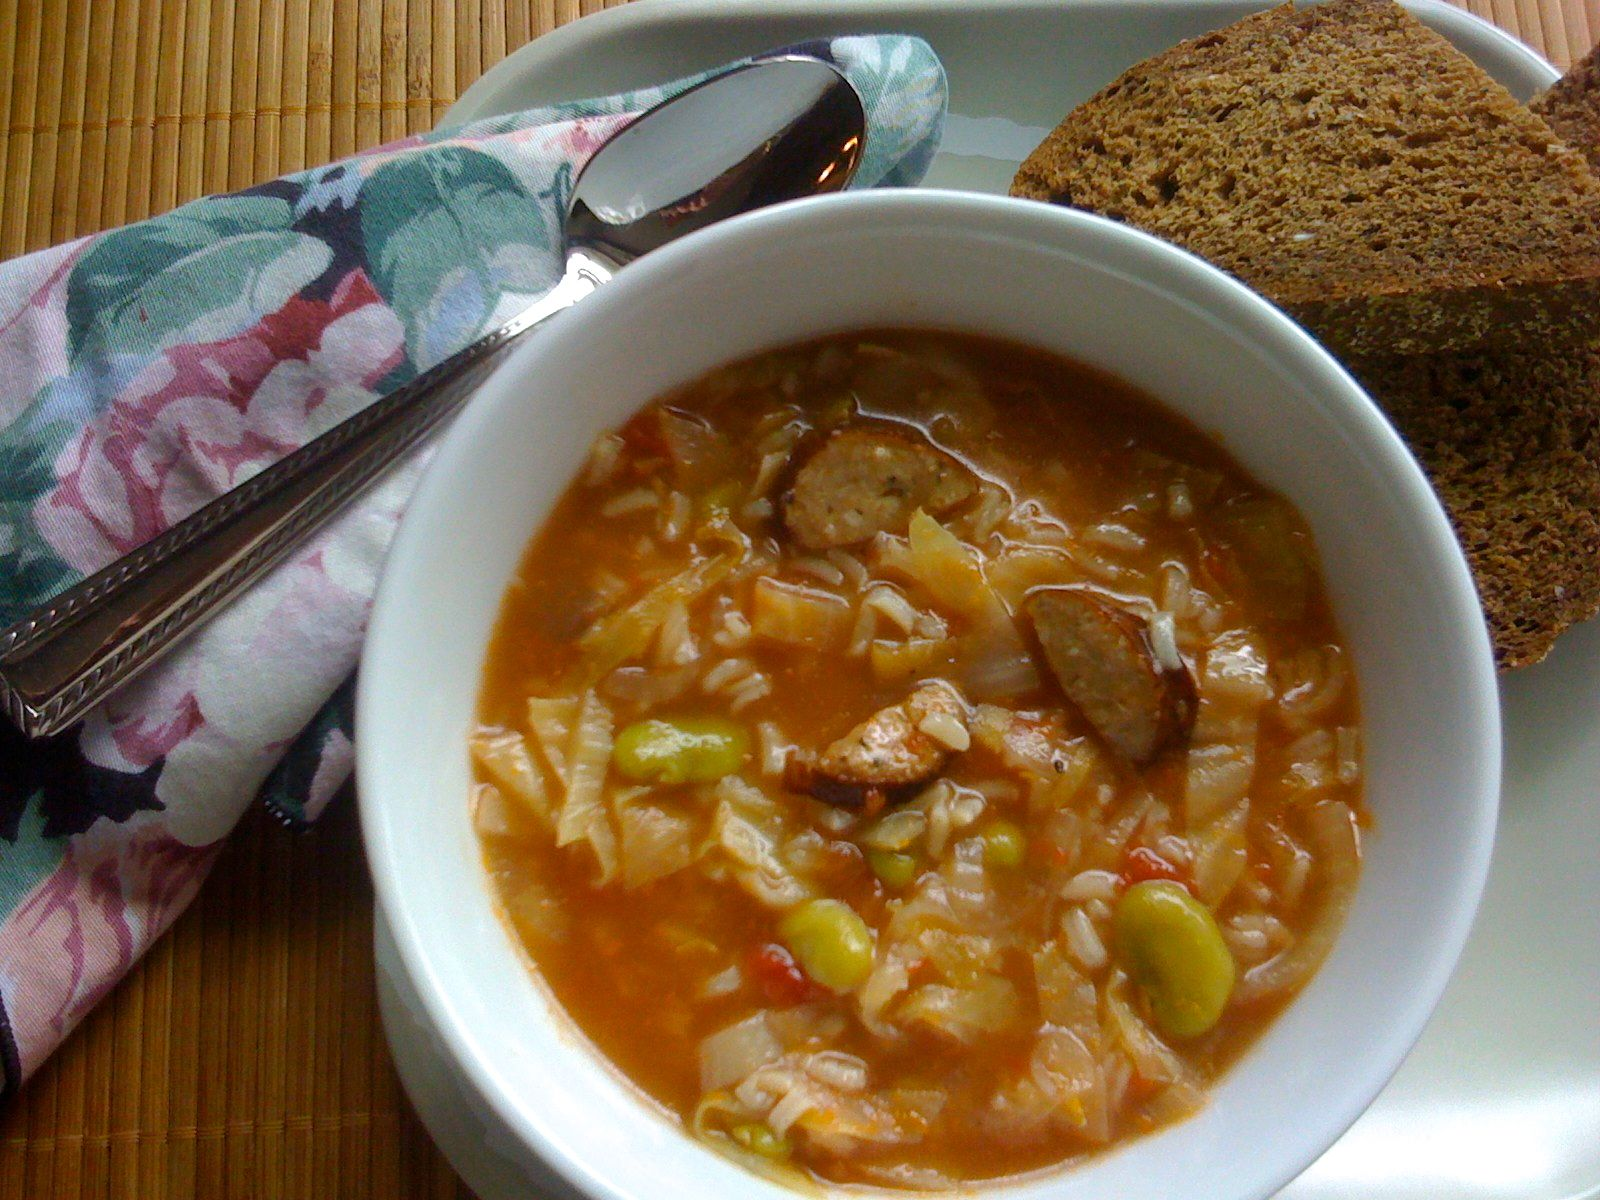 Smokey Kielbasa Cabbage Soup LindySez Recipes, Tips, Blog